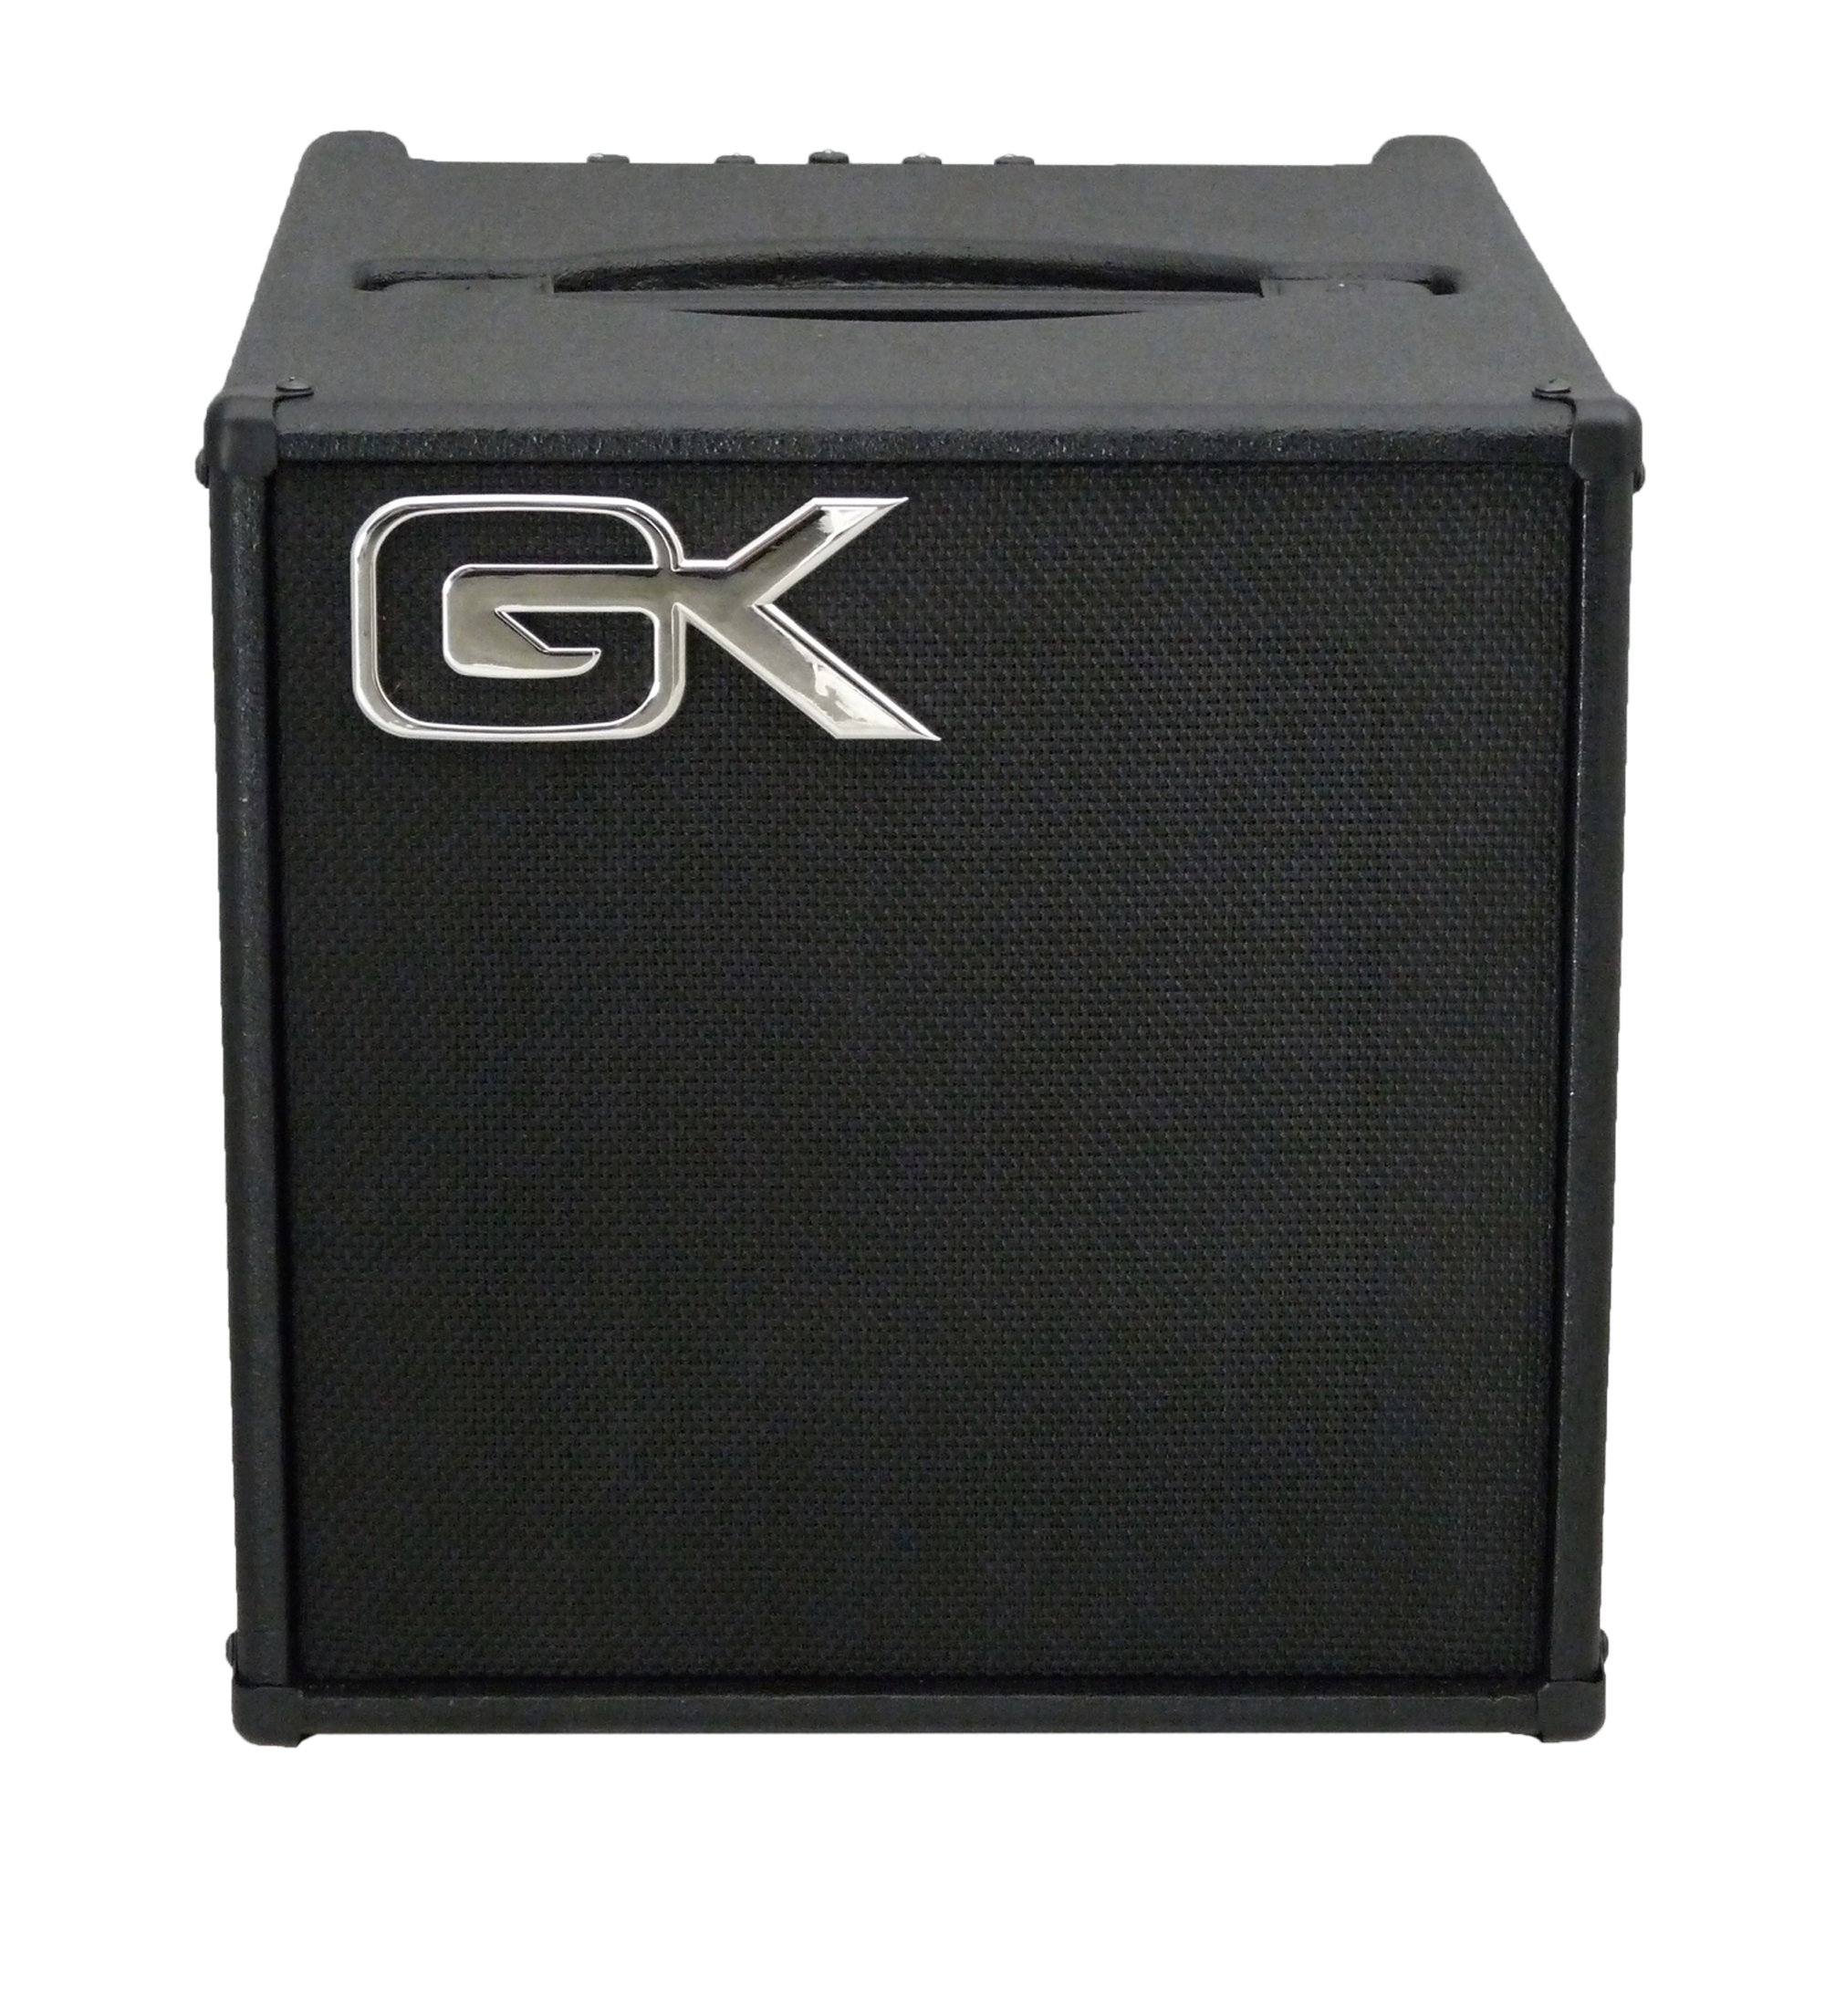 Gallien-Krueger MB110 Bass Combo Amplifier product image